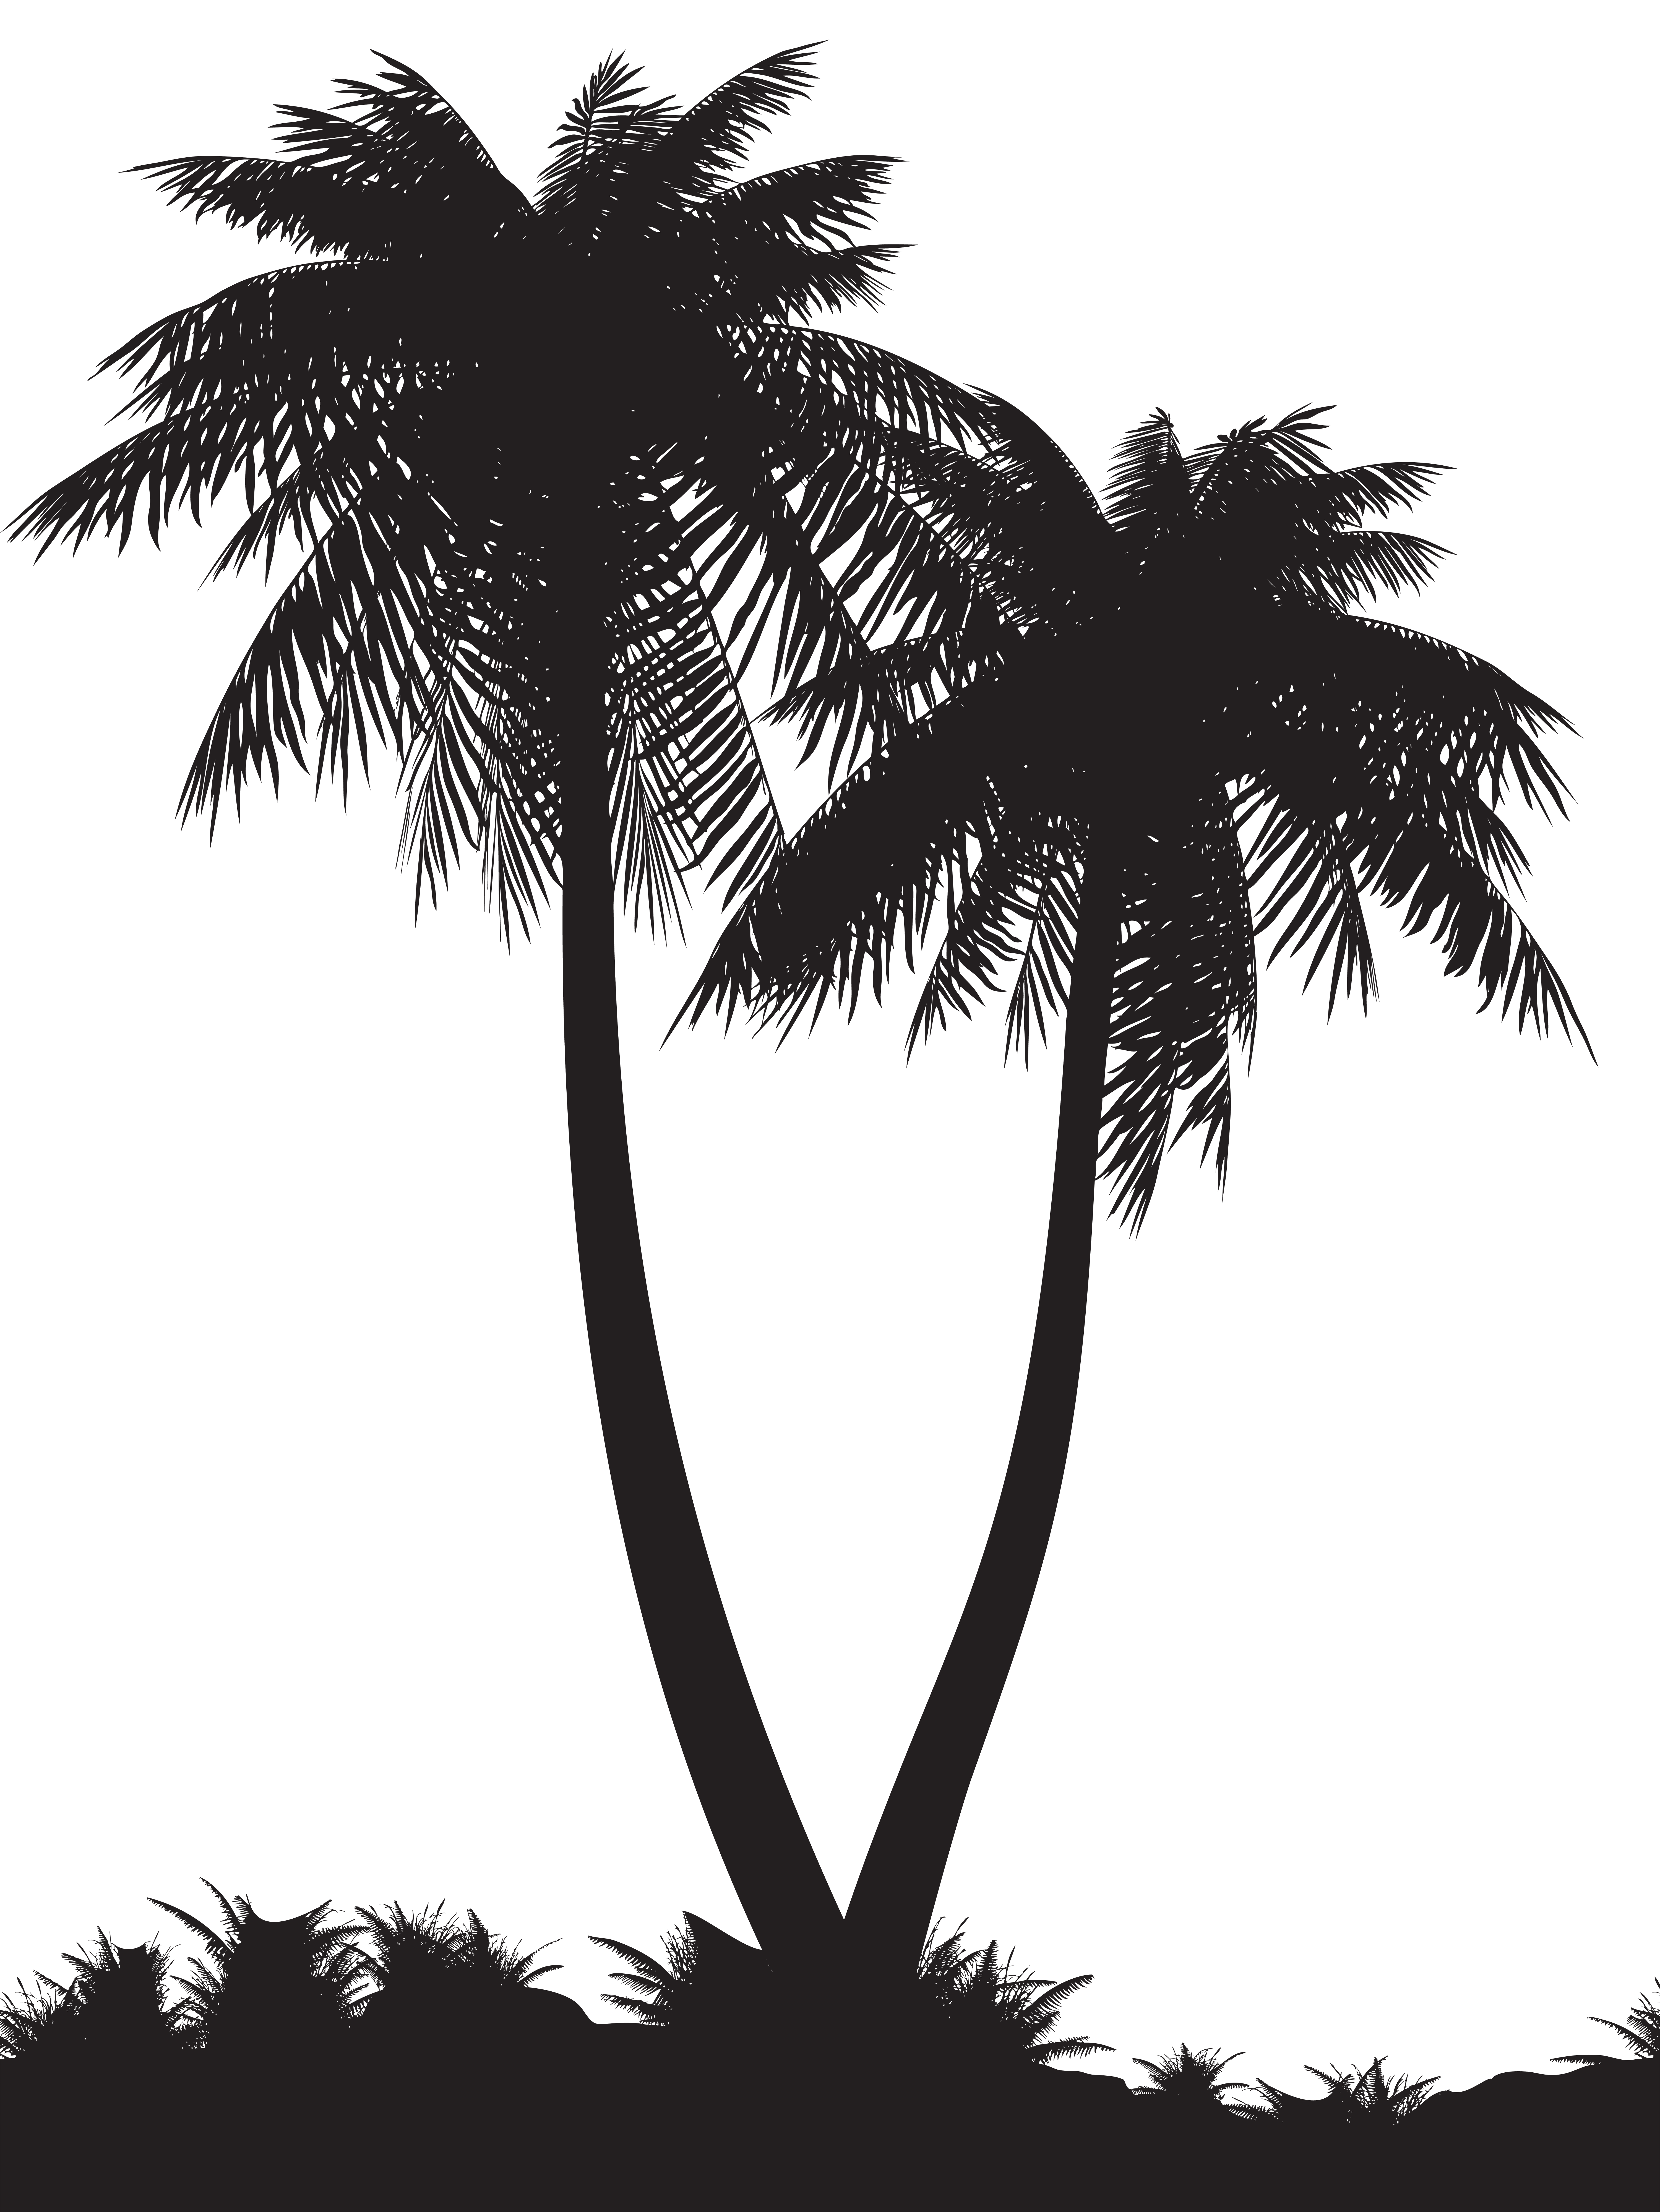 Palm Trees Silhouette Clip Art PNG Image.